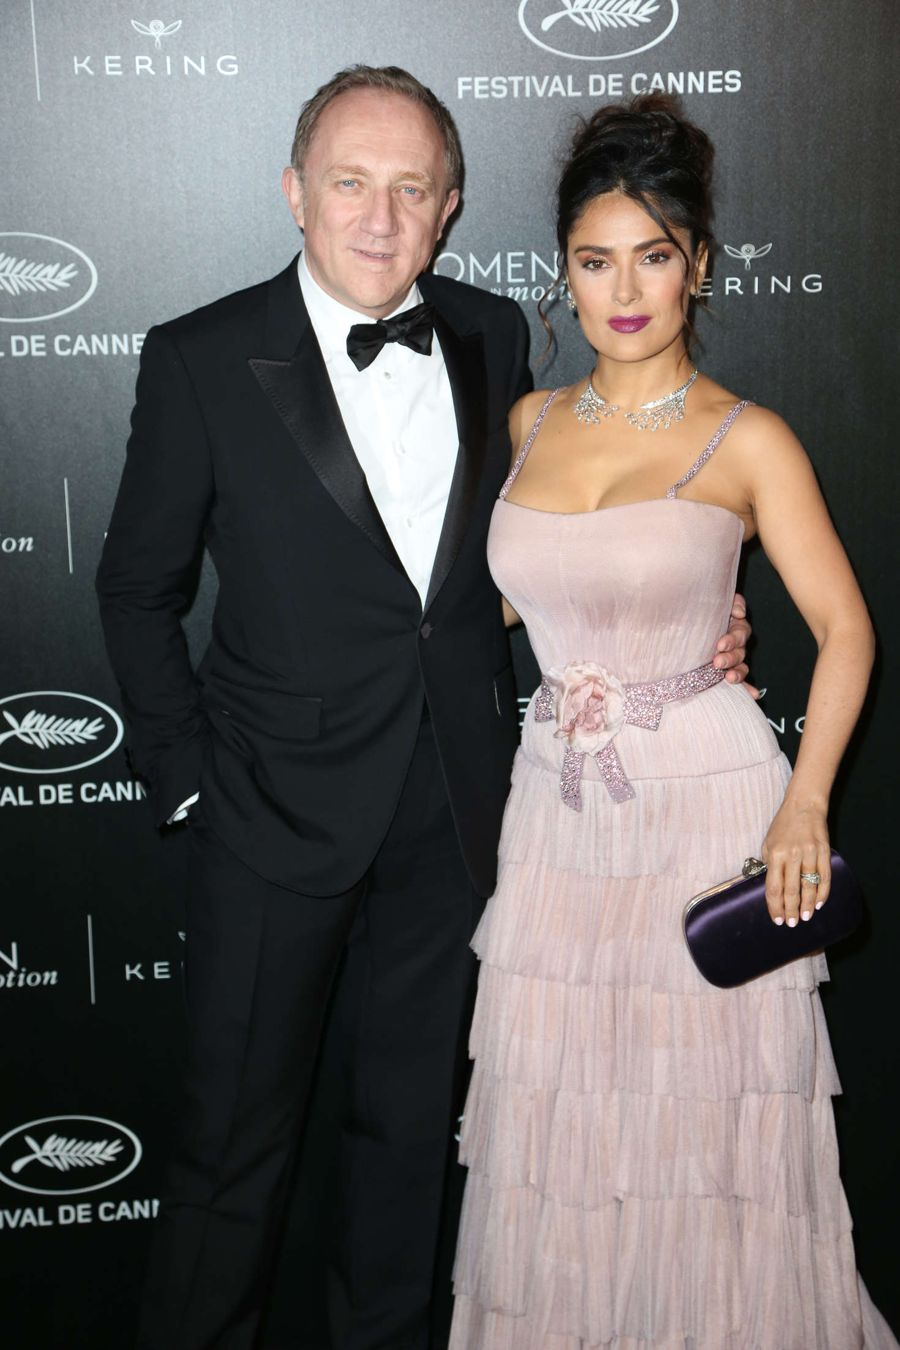 Salma Hayek - Women in Motion Gala Awards at Cannes